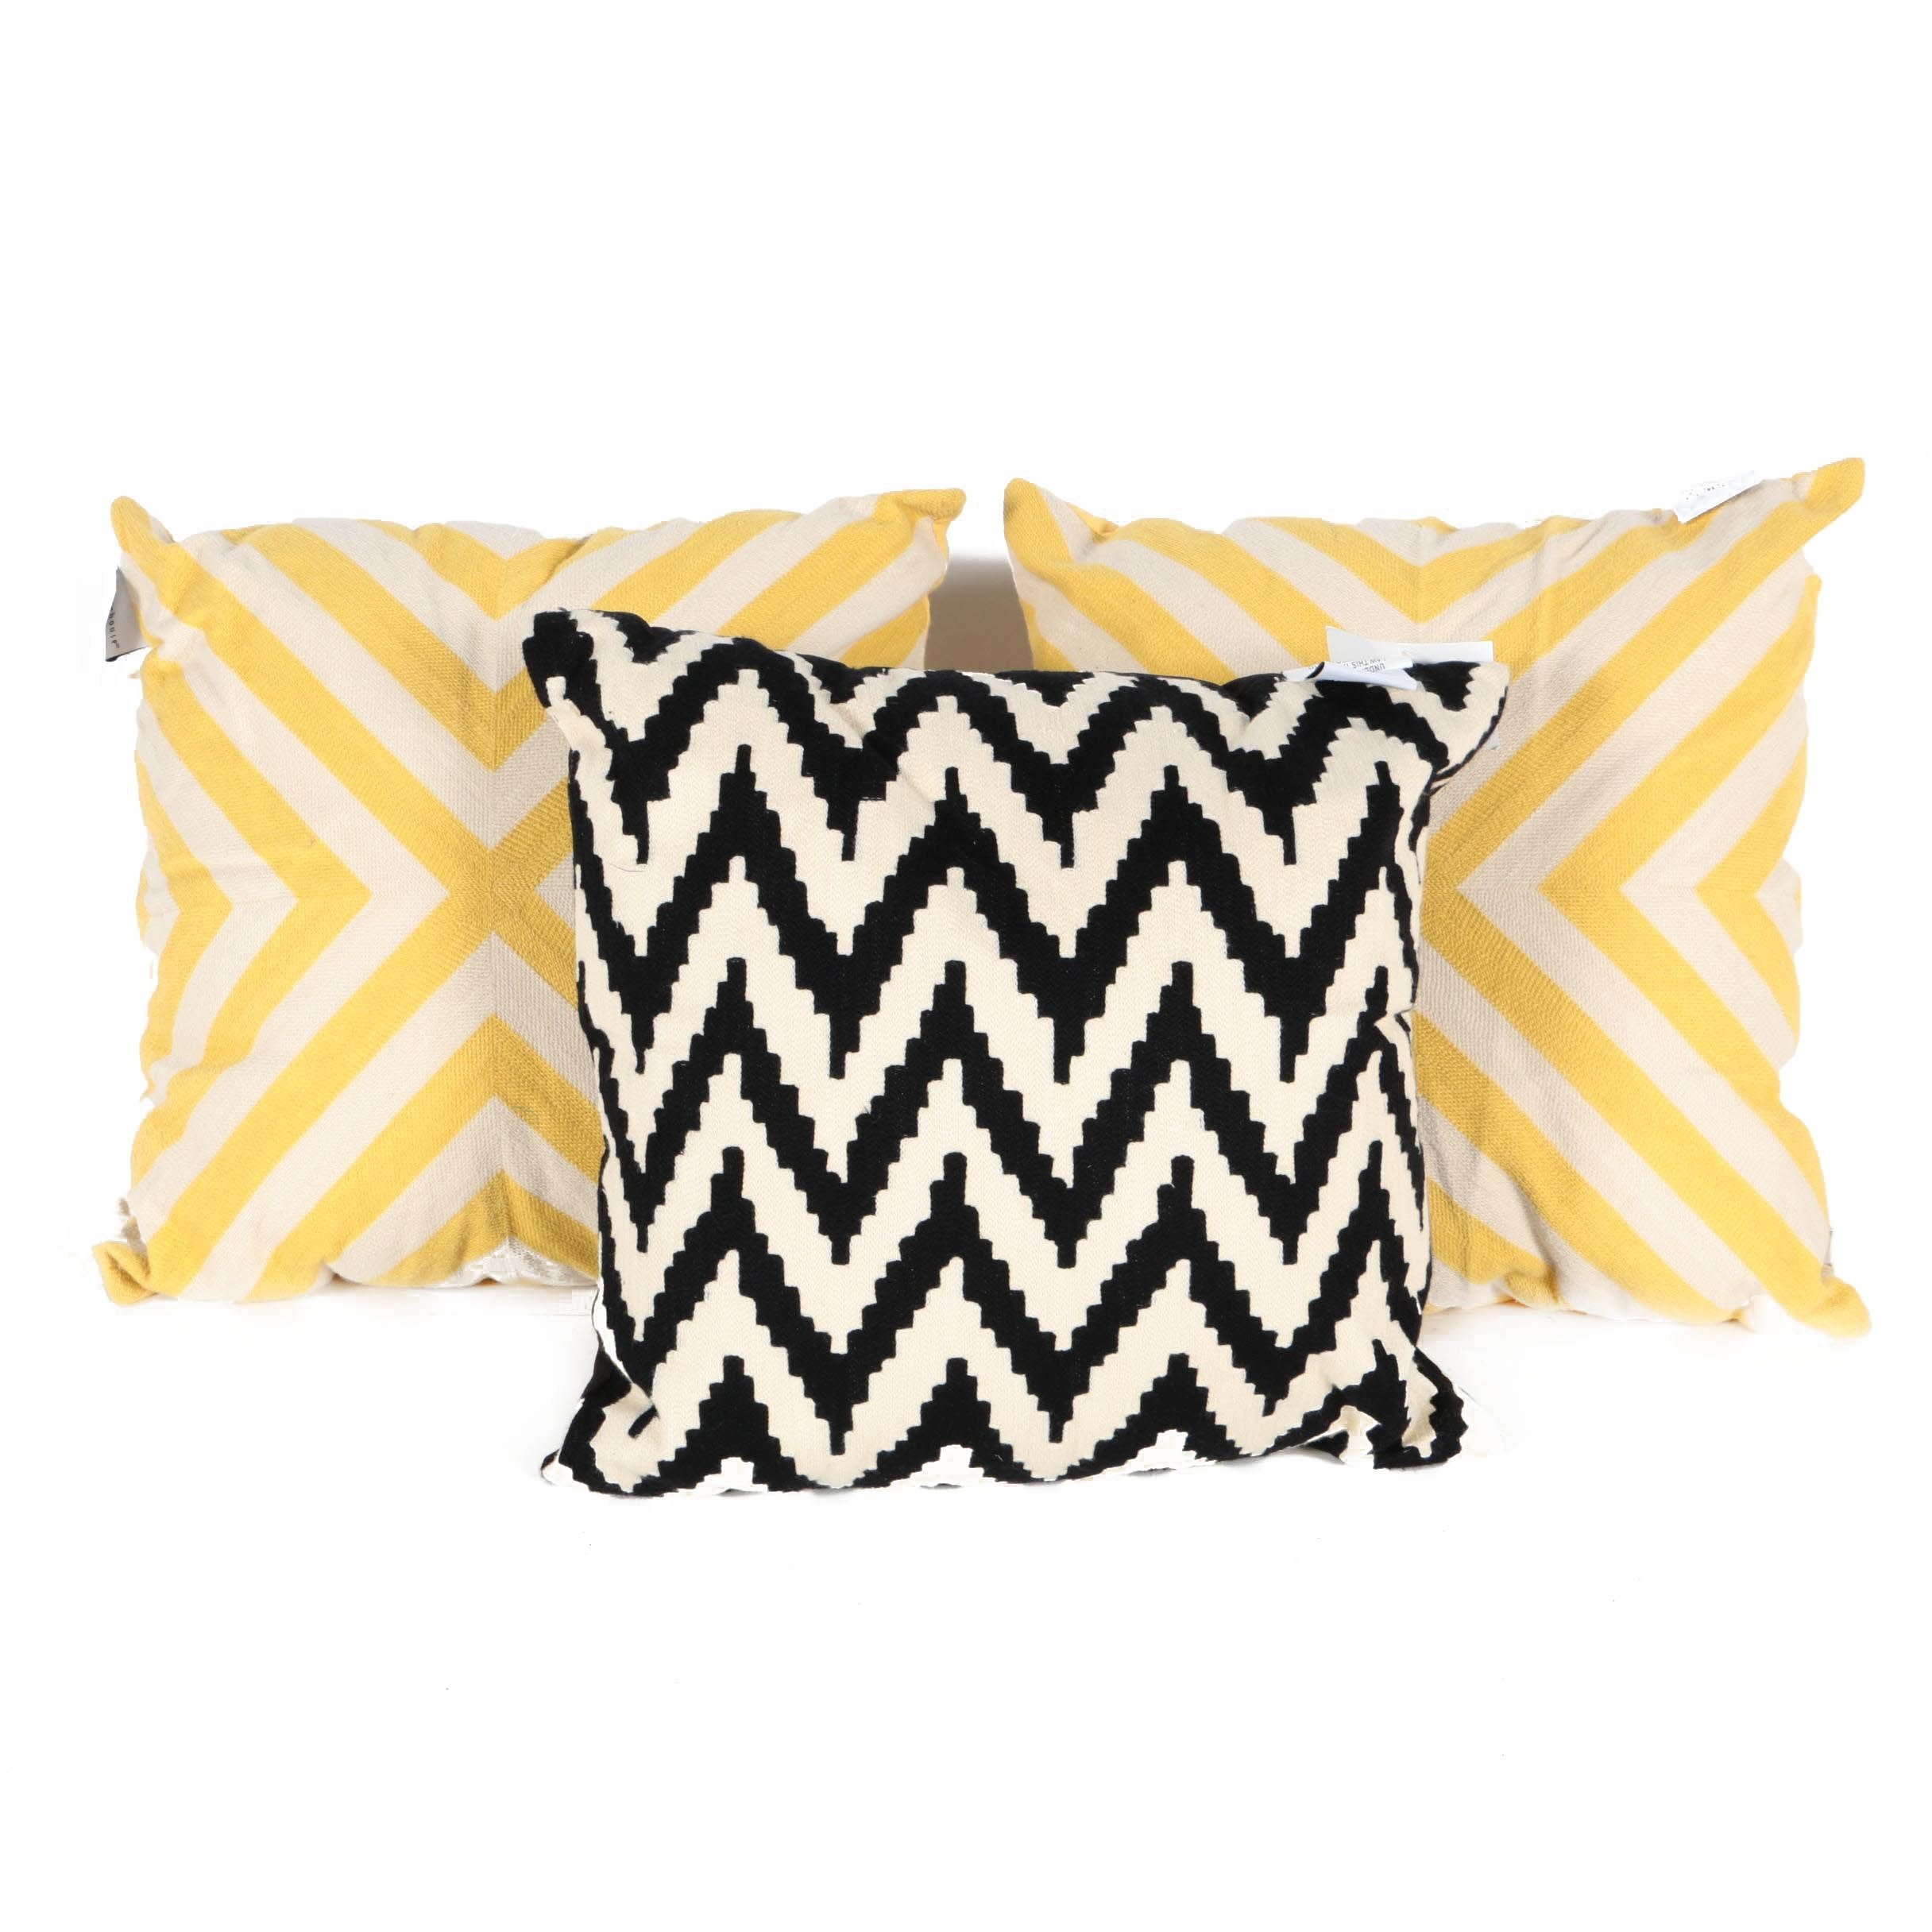 Collection of Three Decorative Pillows